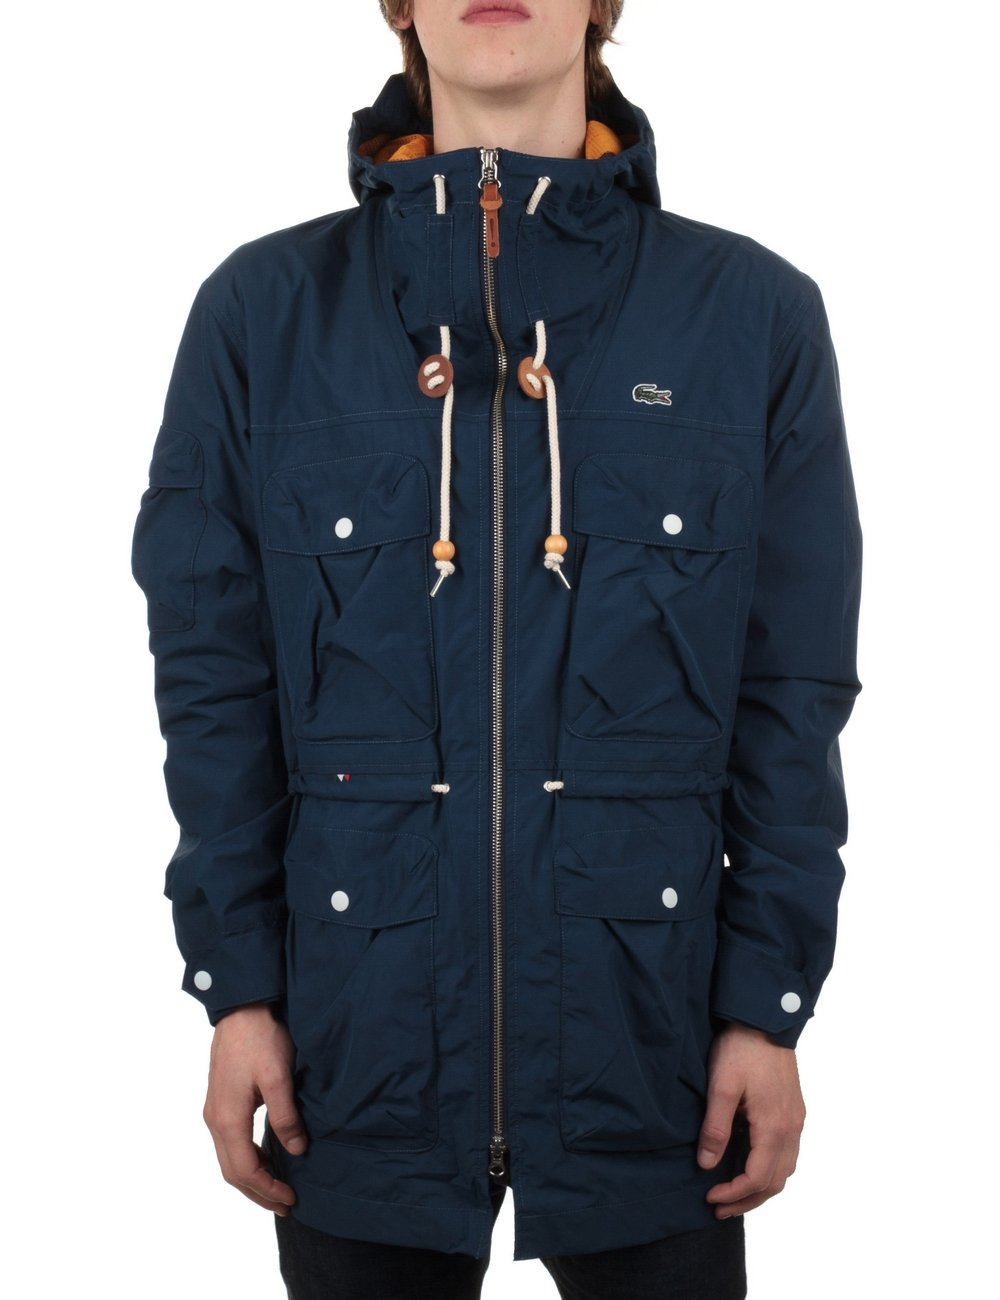 lacoste live hooded jacket ship blue jackets from iconsume uk. Black Bedroom Furniture Sets. Home Design Ideas